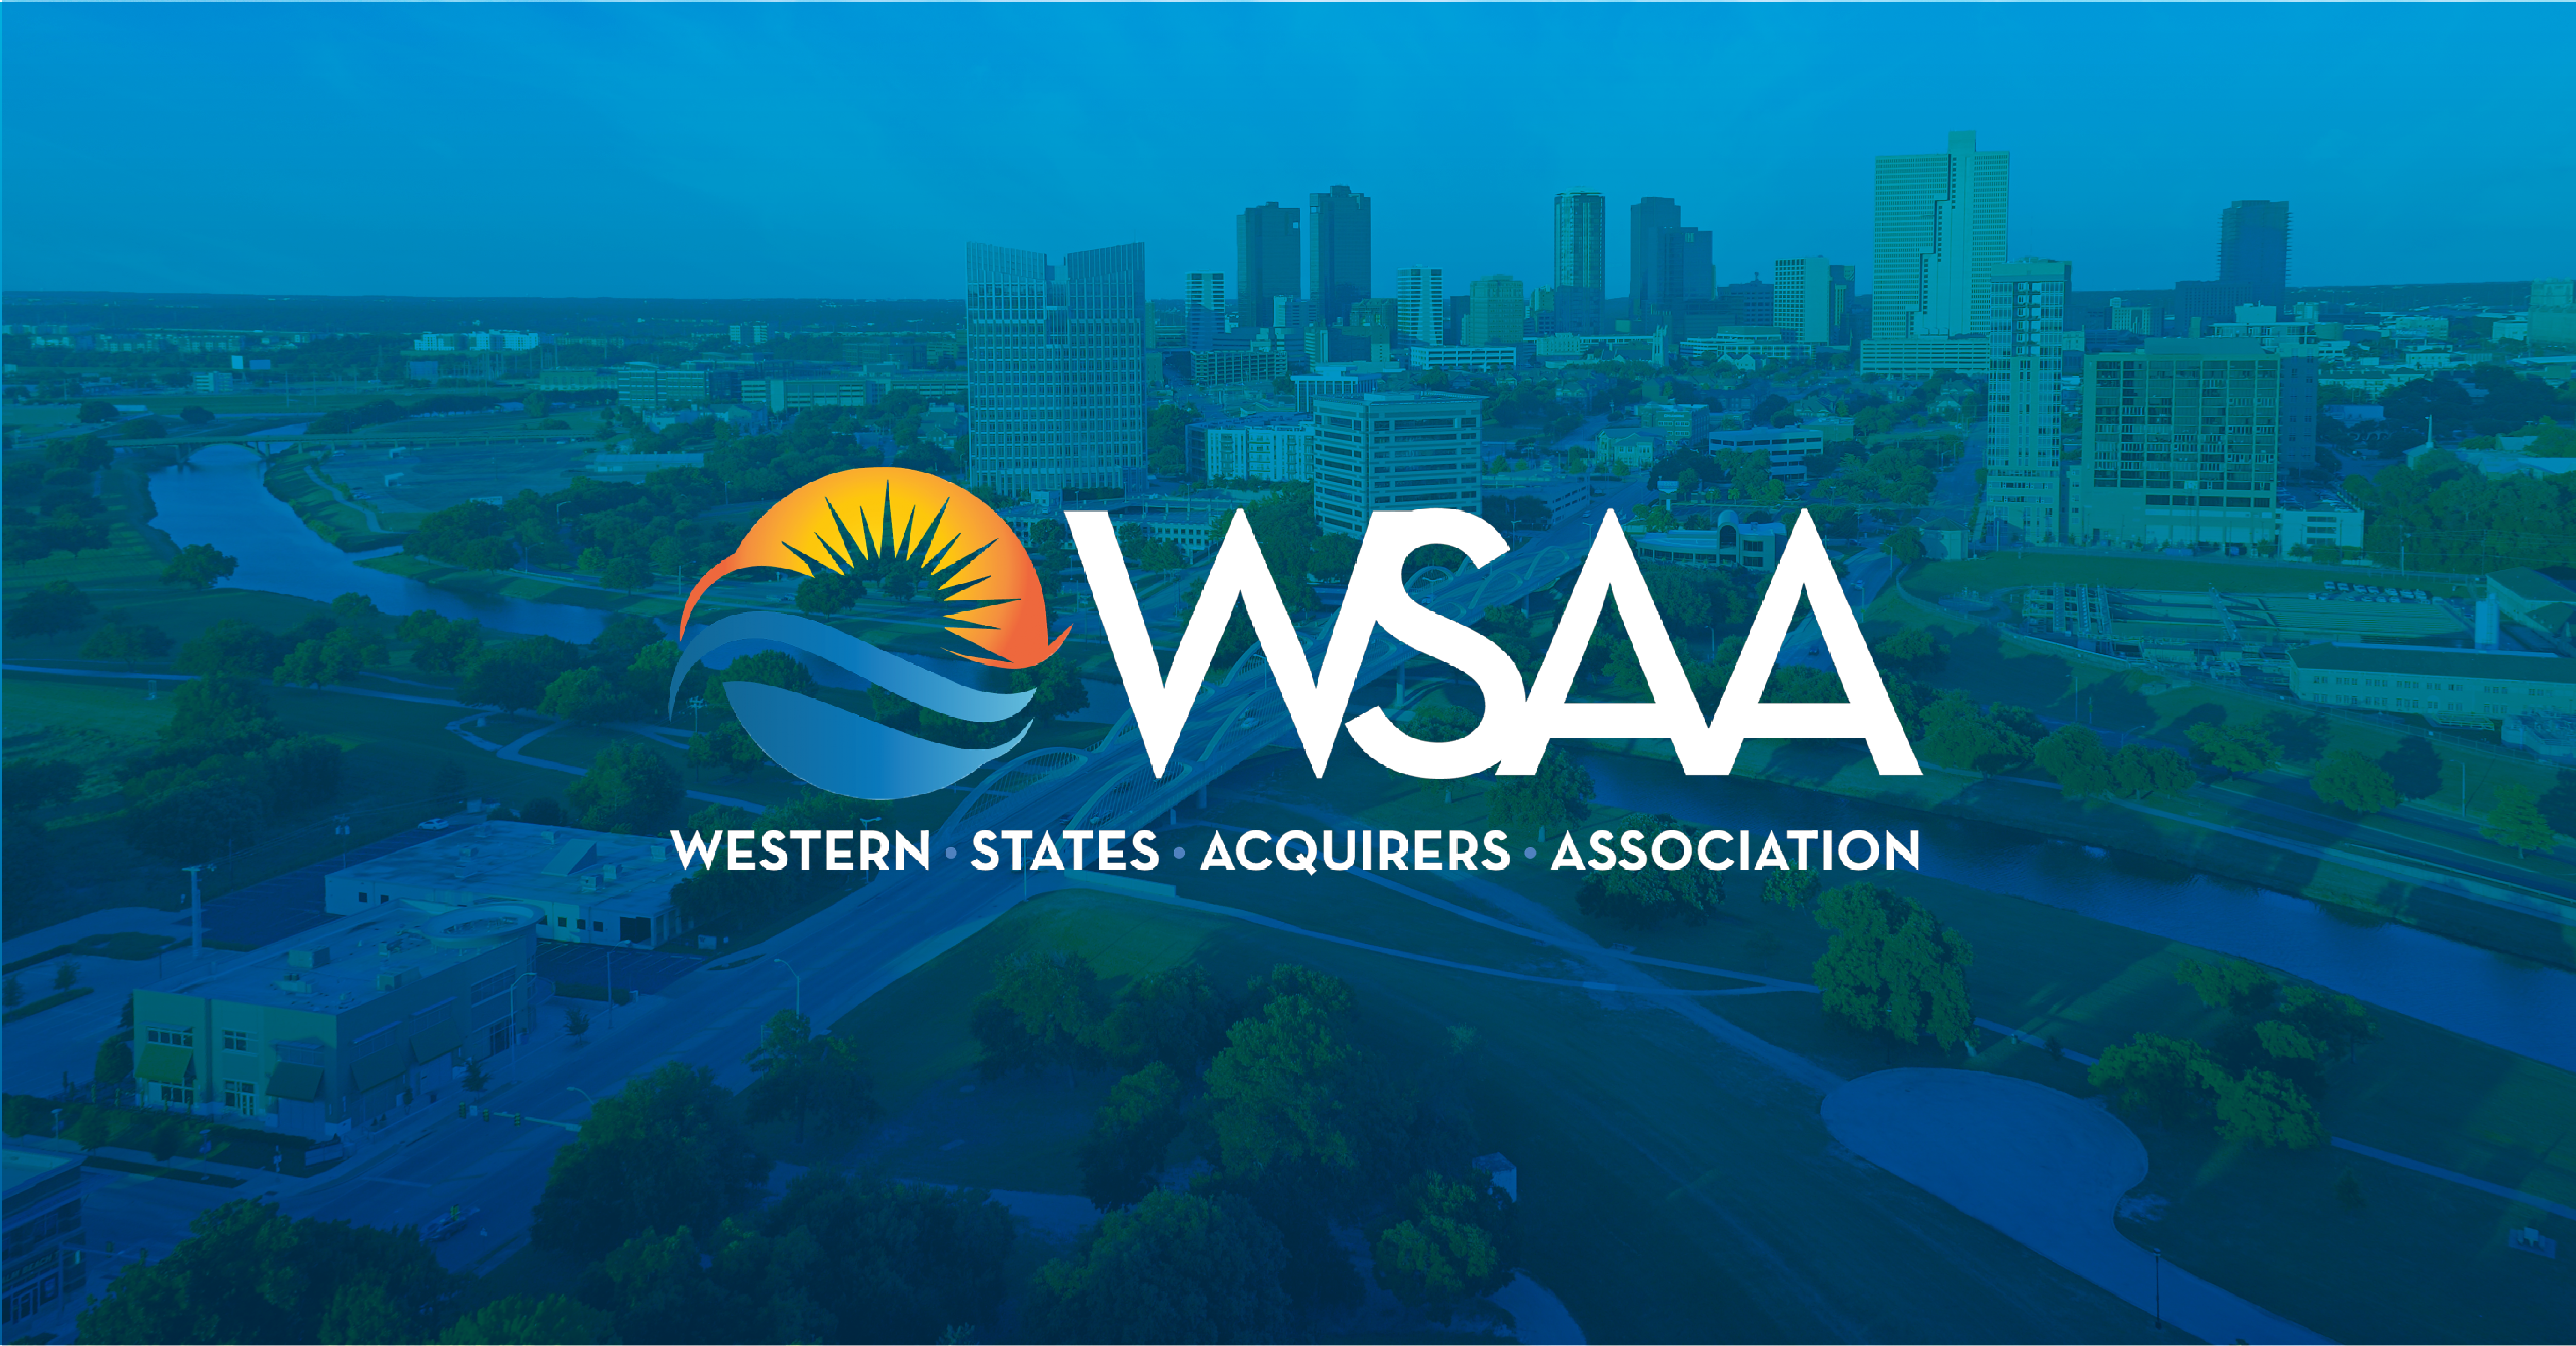 WSAA 2021 is Fast Approaching! Here's What You Need to Know.